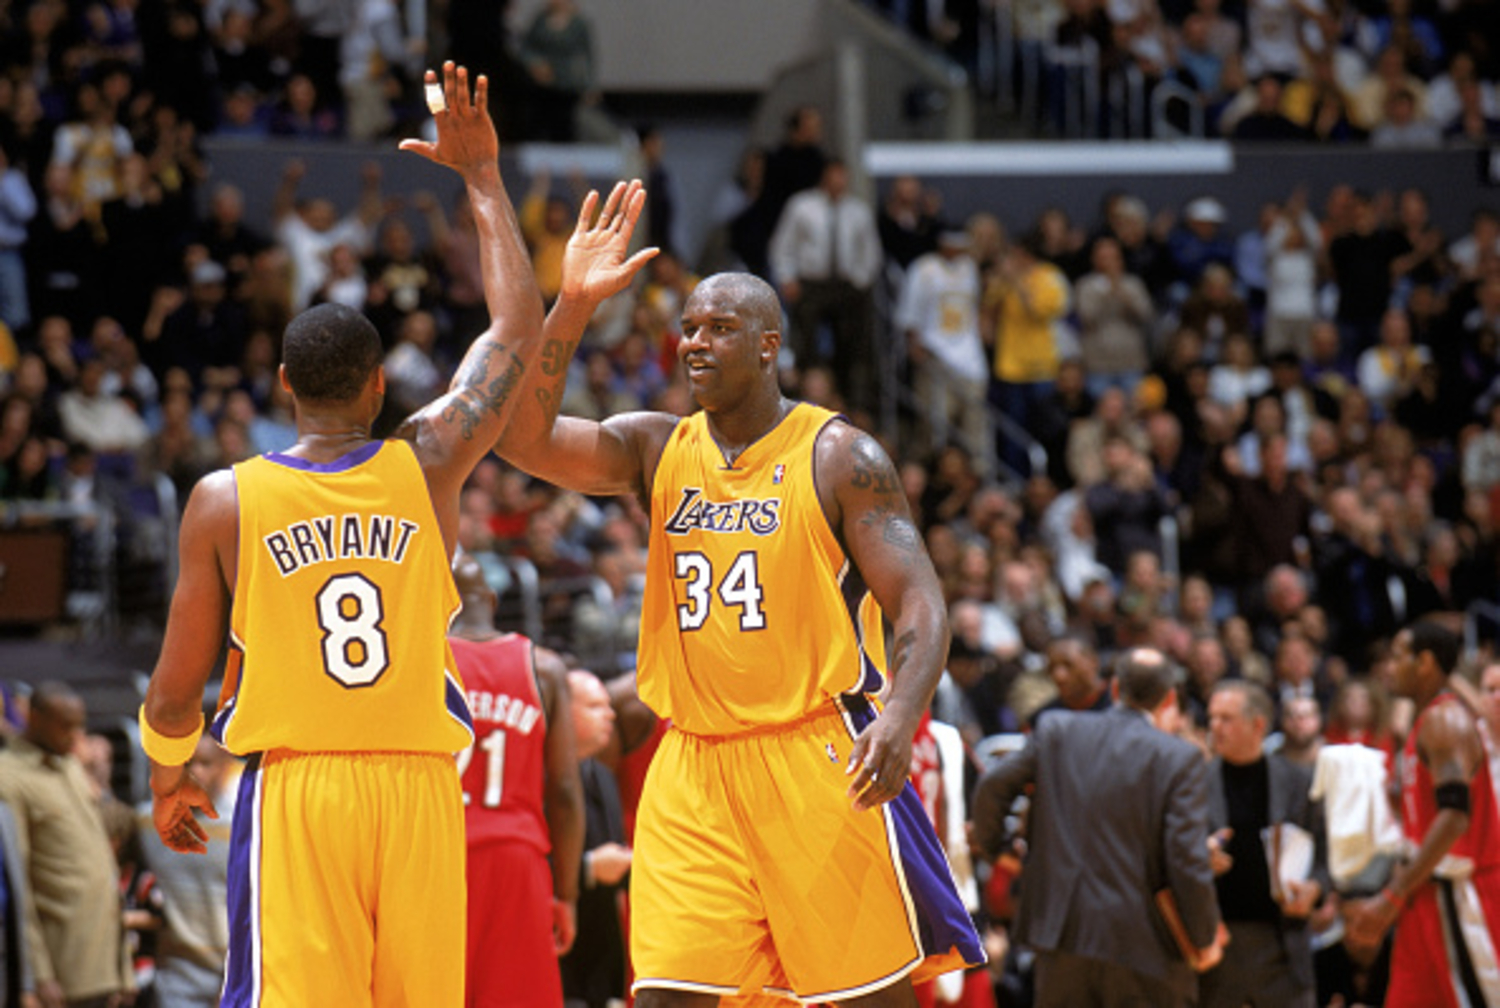 Shaquille O'Neal and Kobe Bryant had a lot of success together